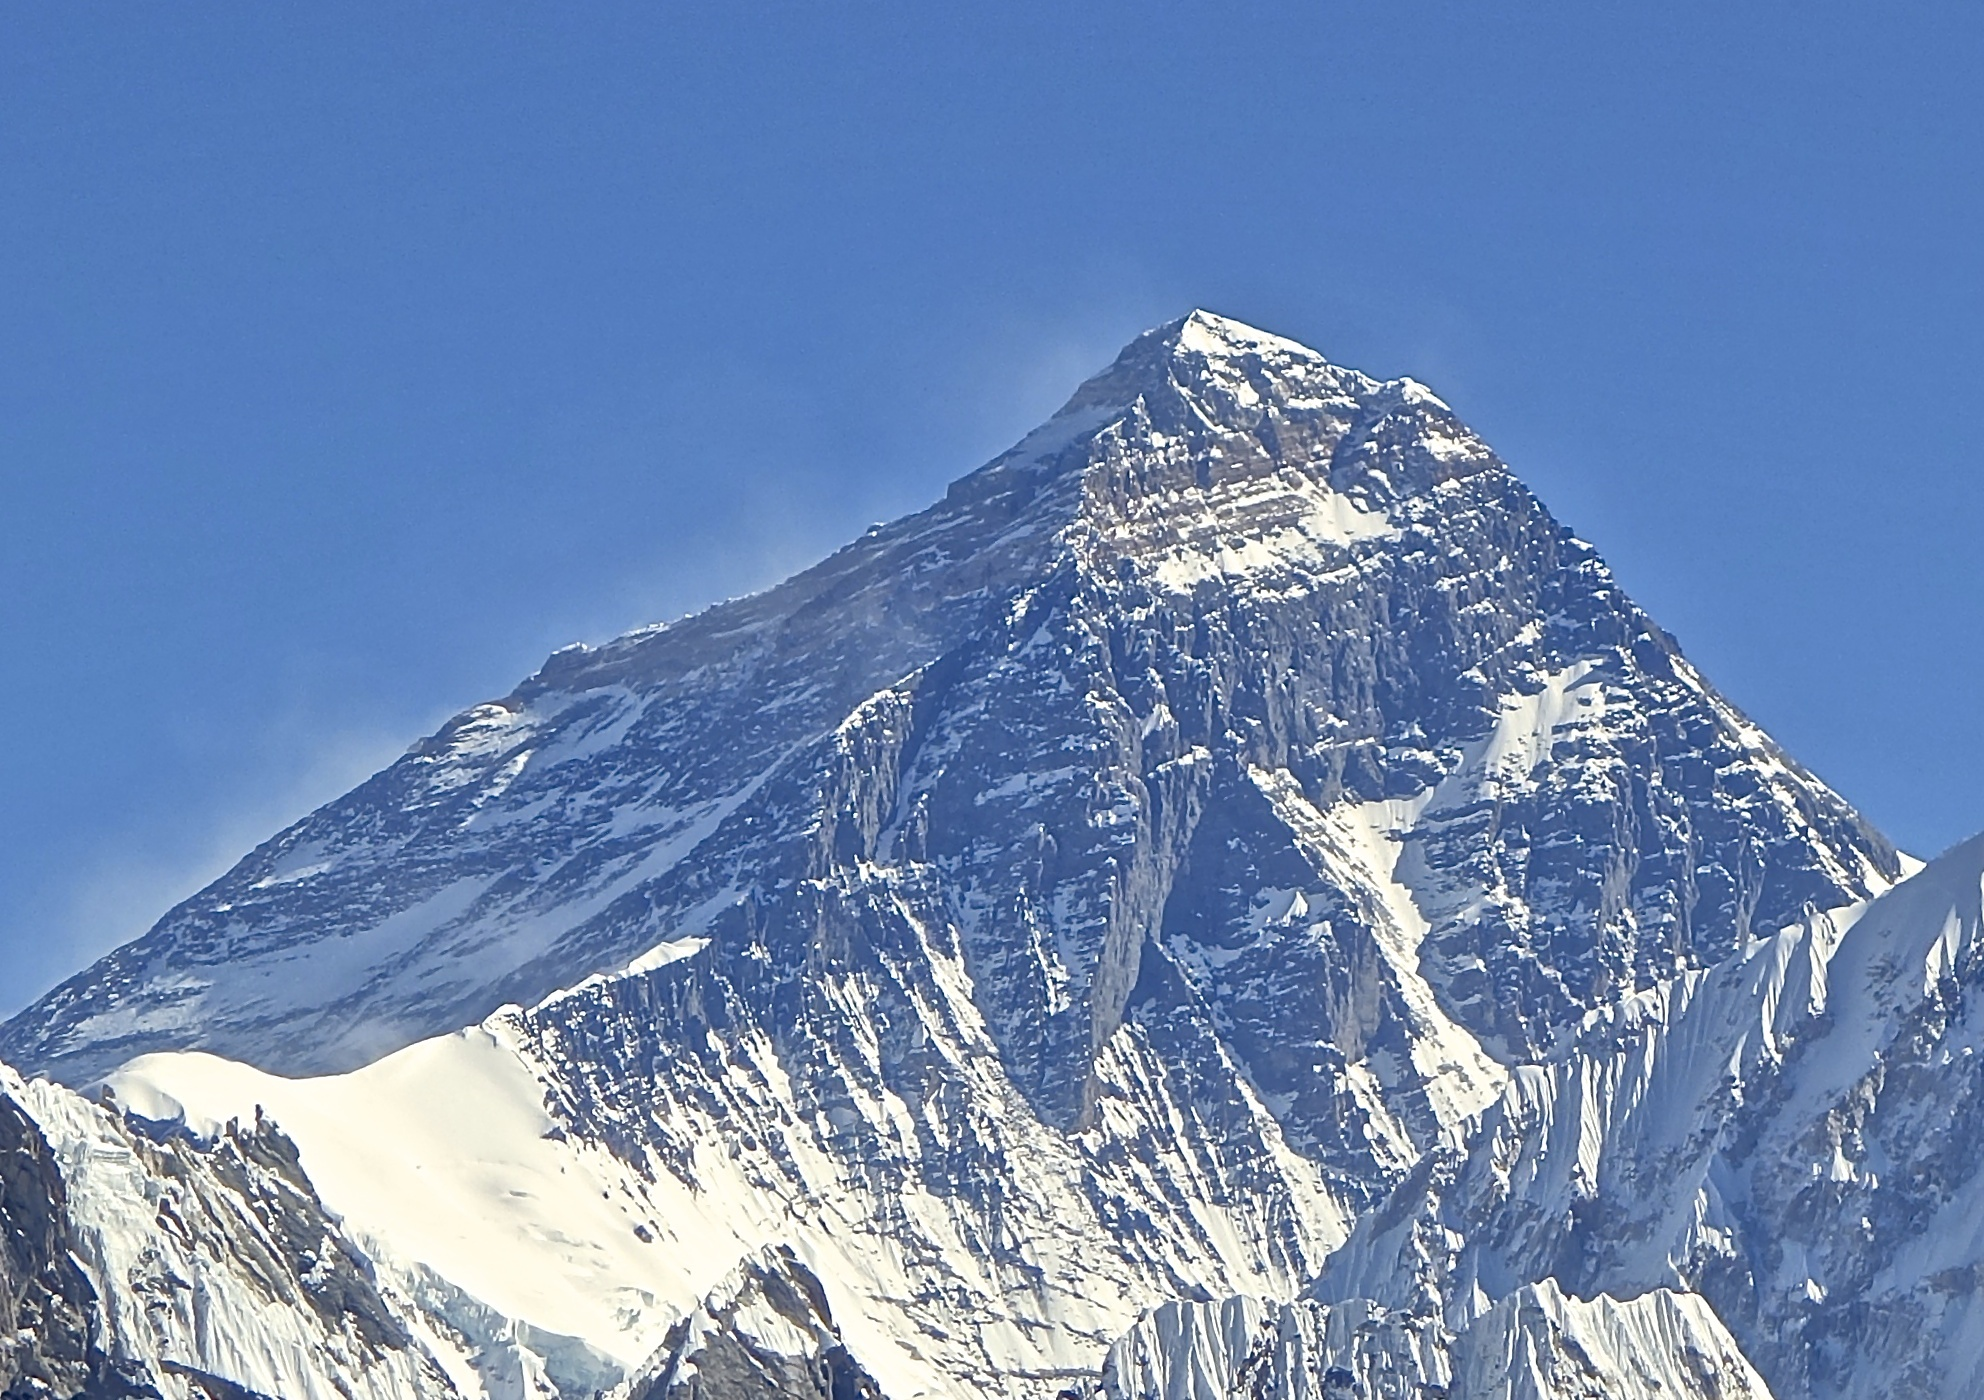 Mt._Everest_from_Gokyo_Ri_November_5,_2012_Cropped